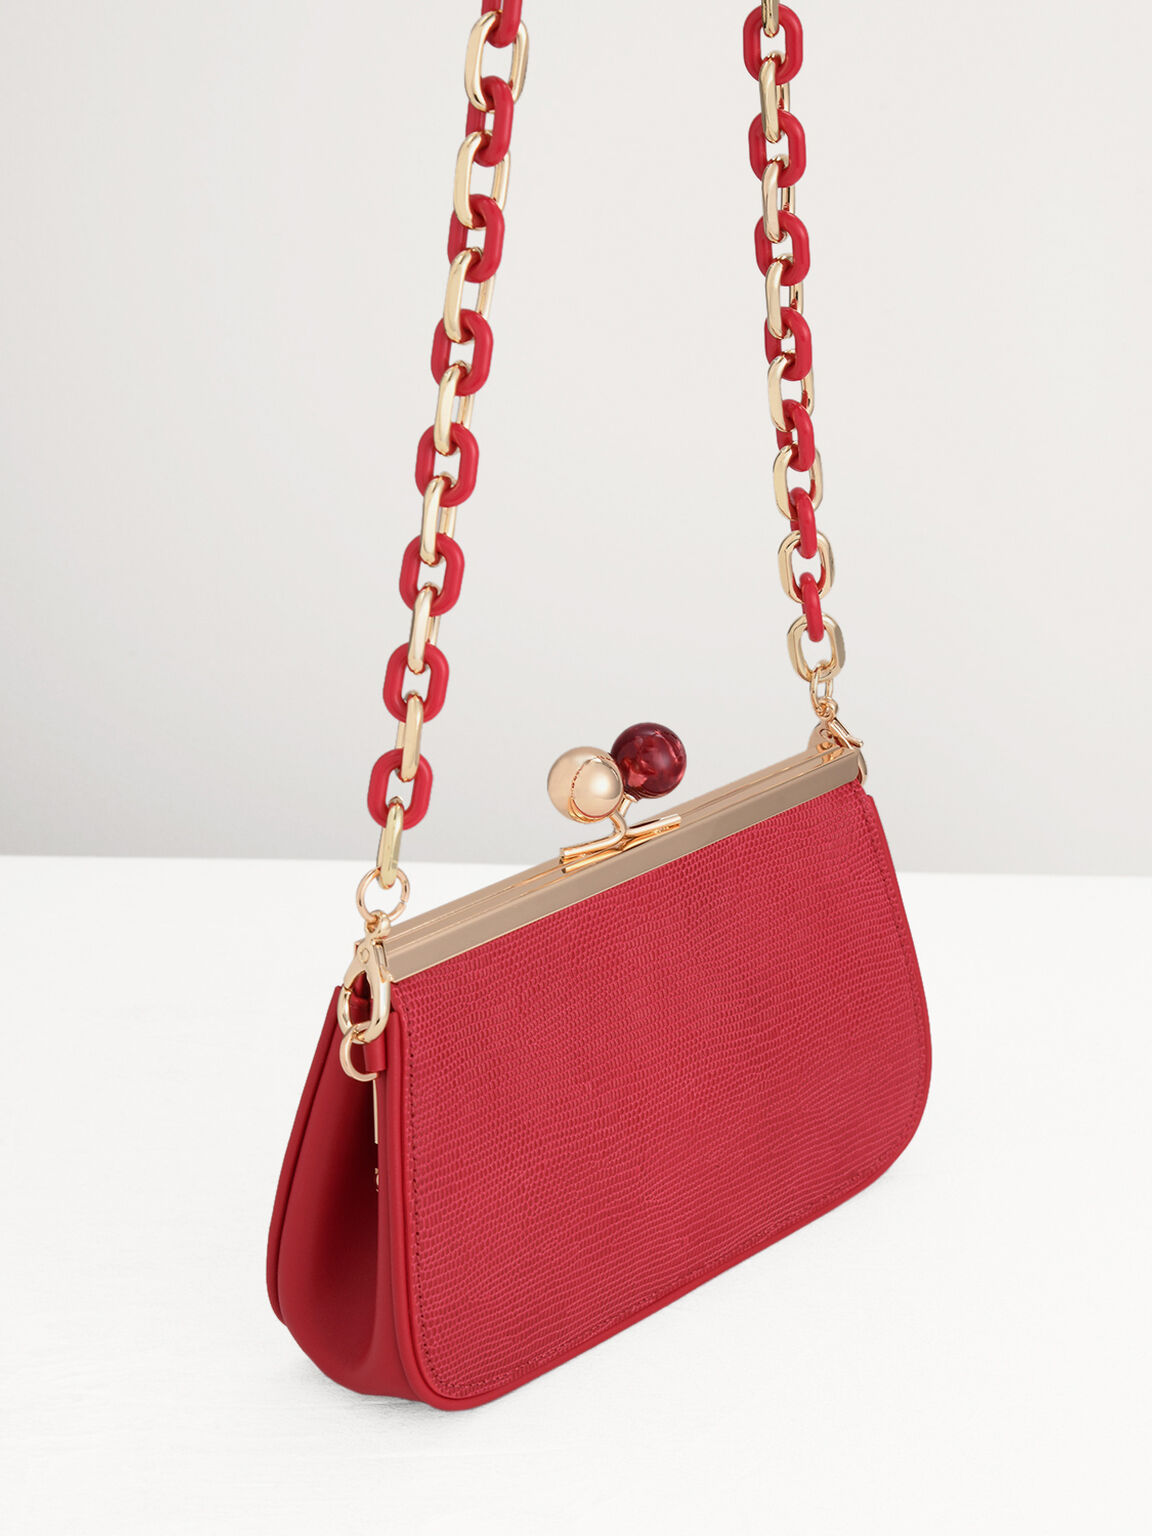 Kiss-Lock Leather Bag with Lizard Effect, Red, hi-res